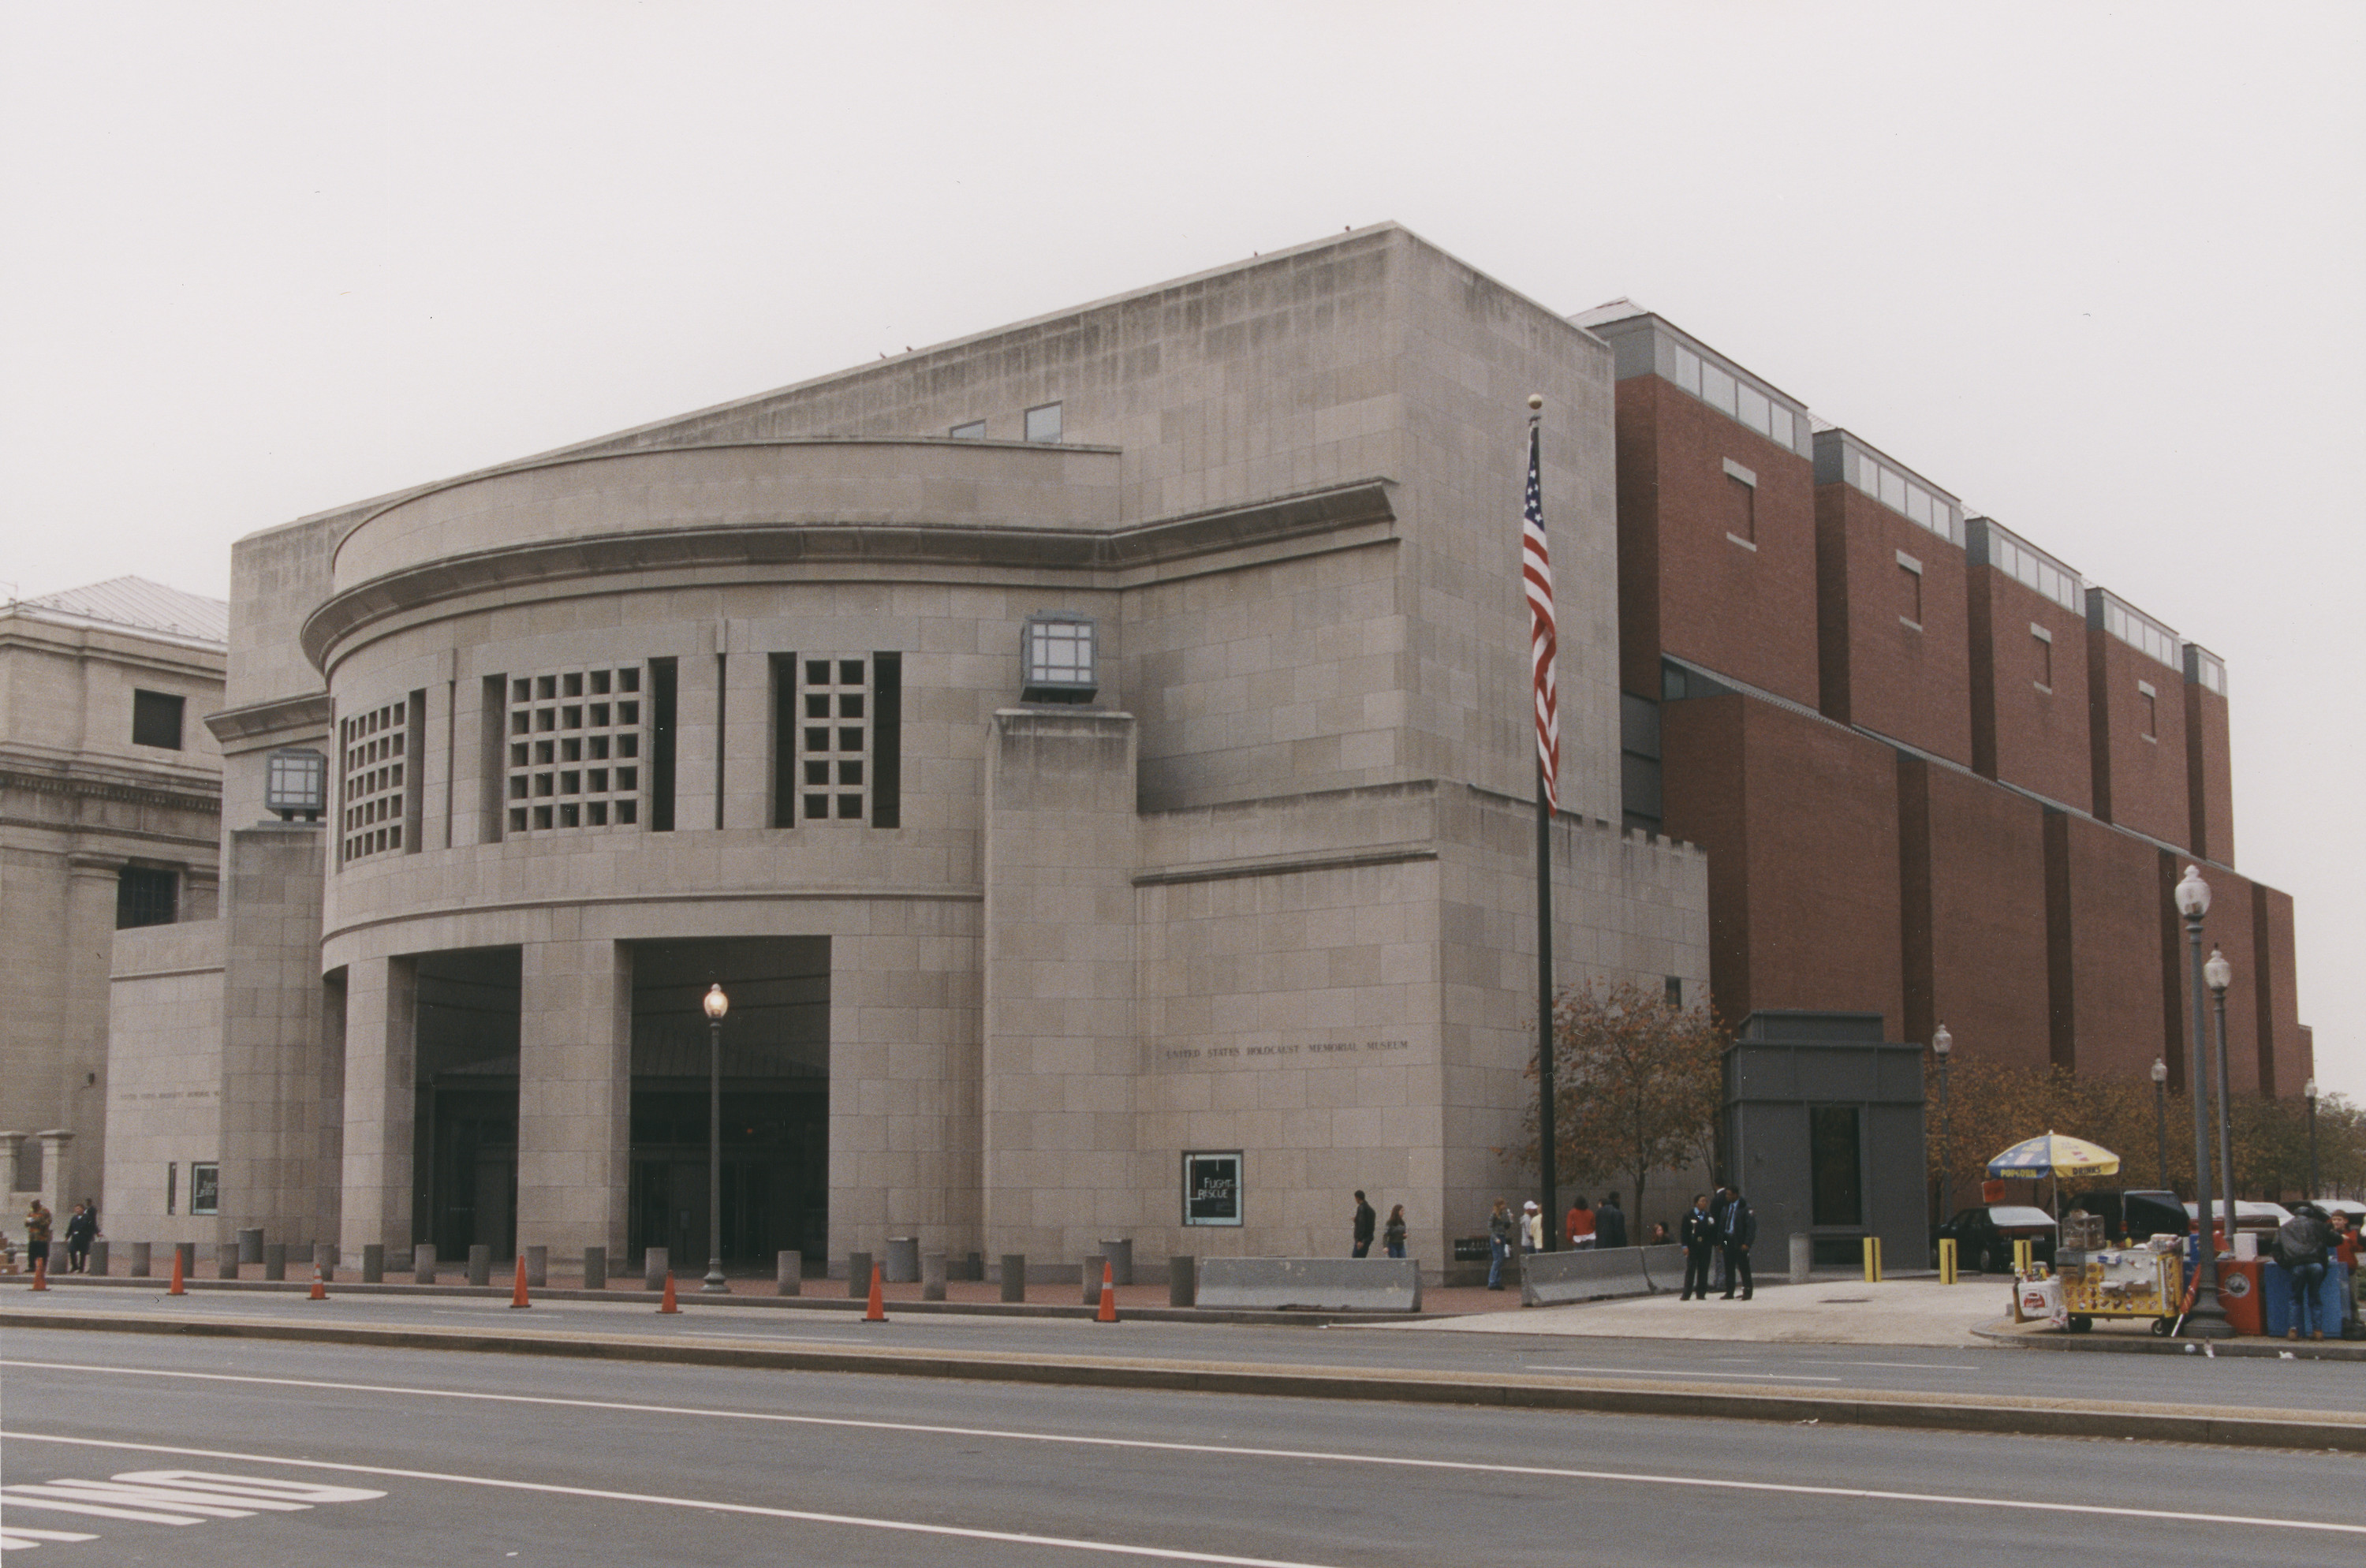 View of the U.S. Holocaust Memorial Museum from across 14th Street.